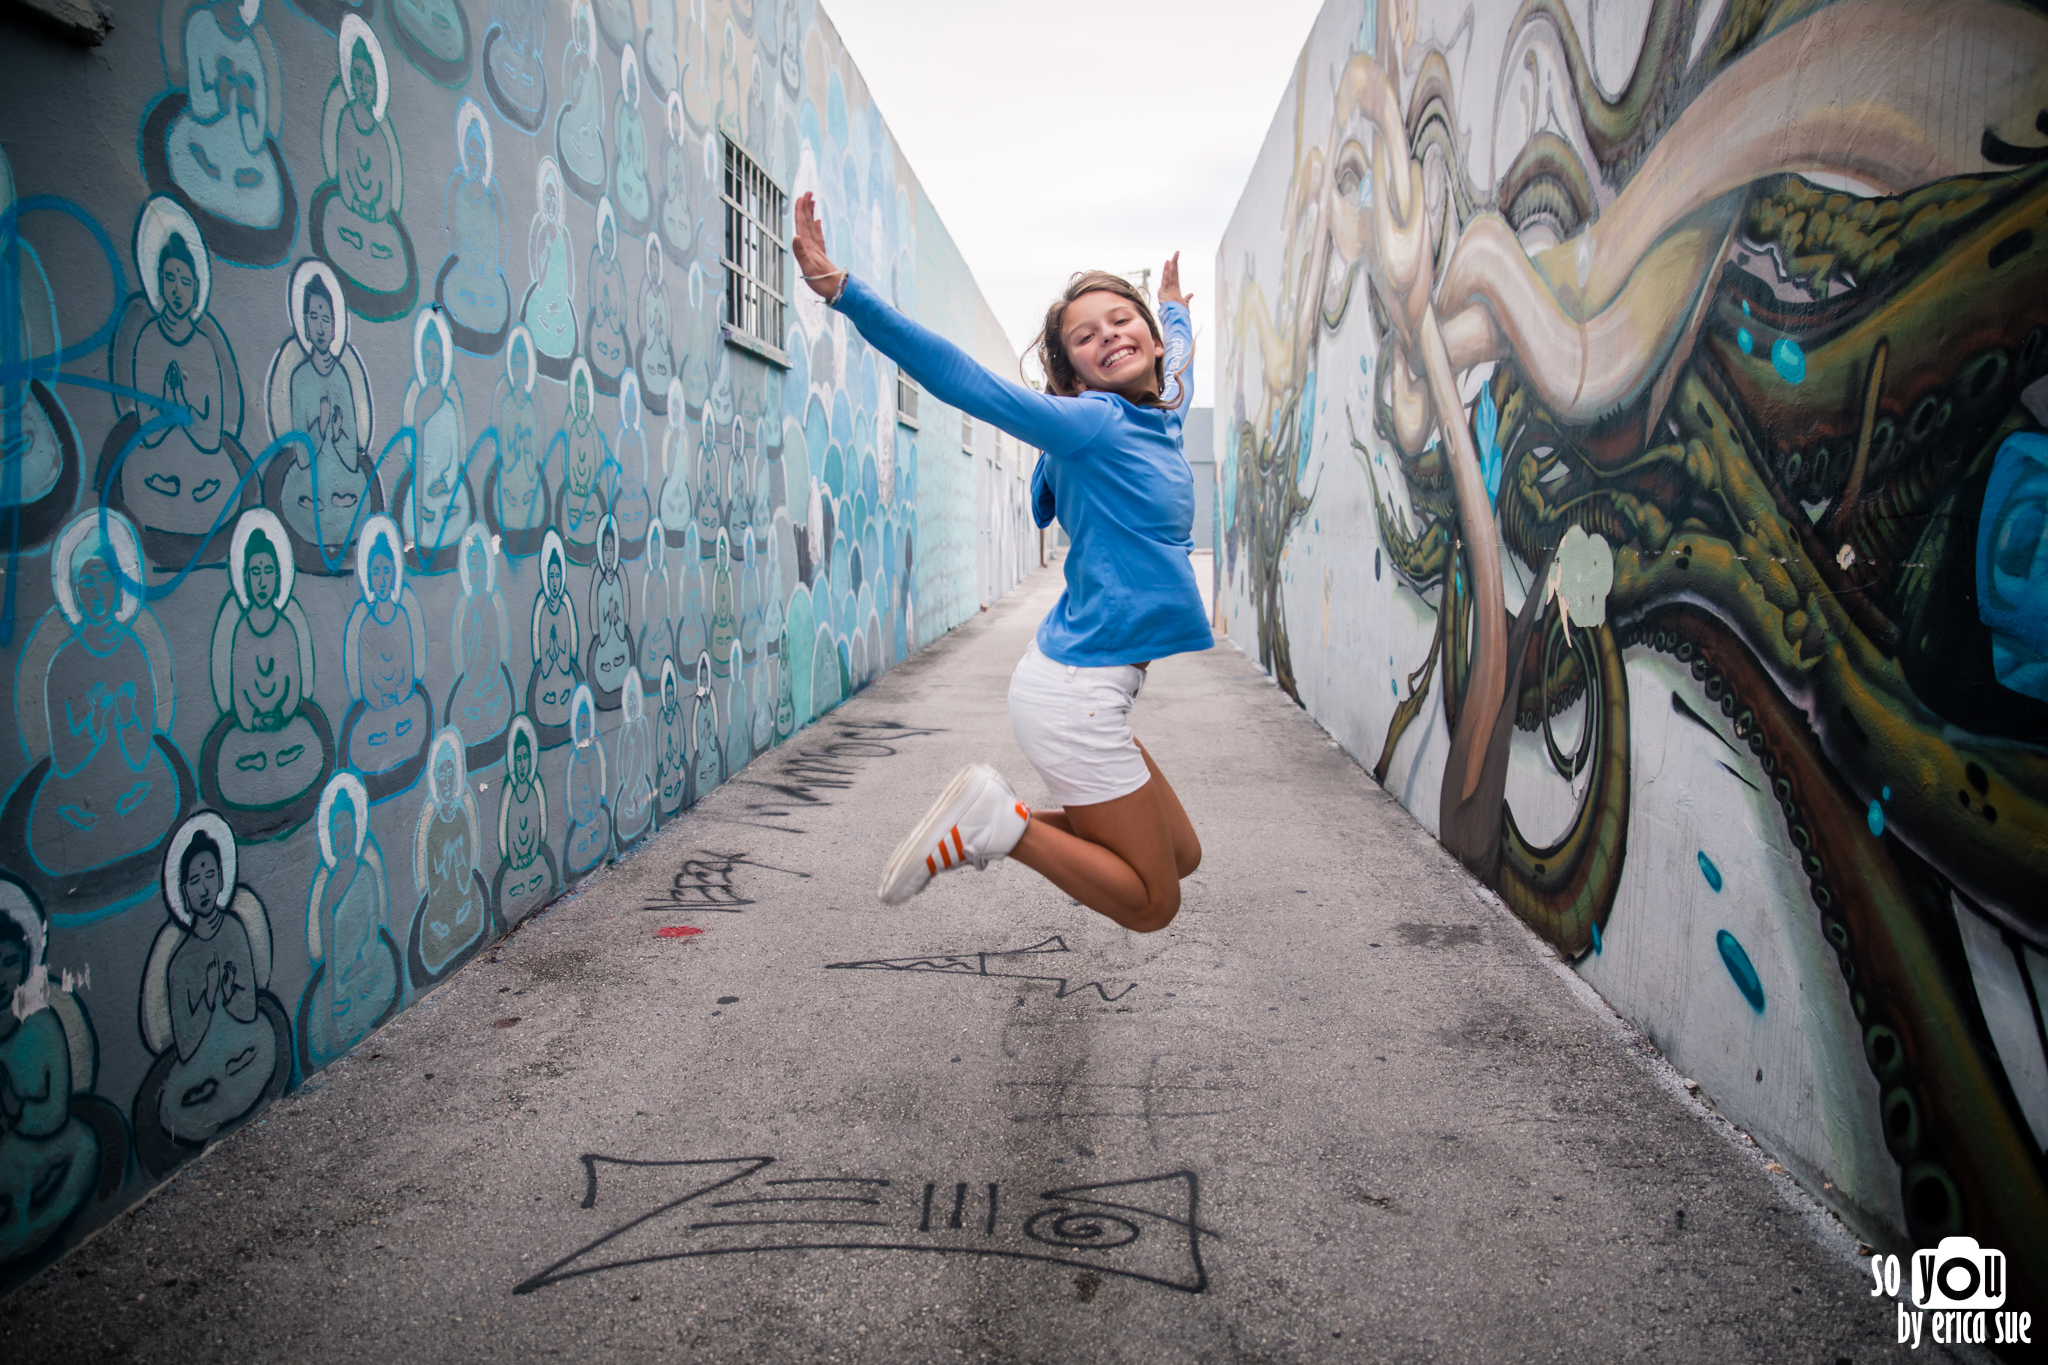 so-you-by-erica-sue-wynwood-walls-miami-photography-mitzvah-pre-shoot-5524.jpg